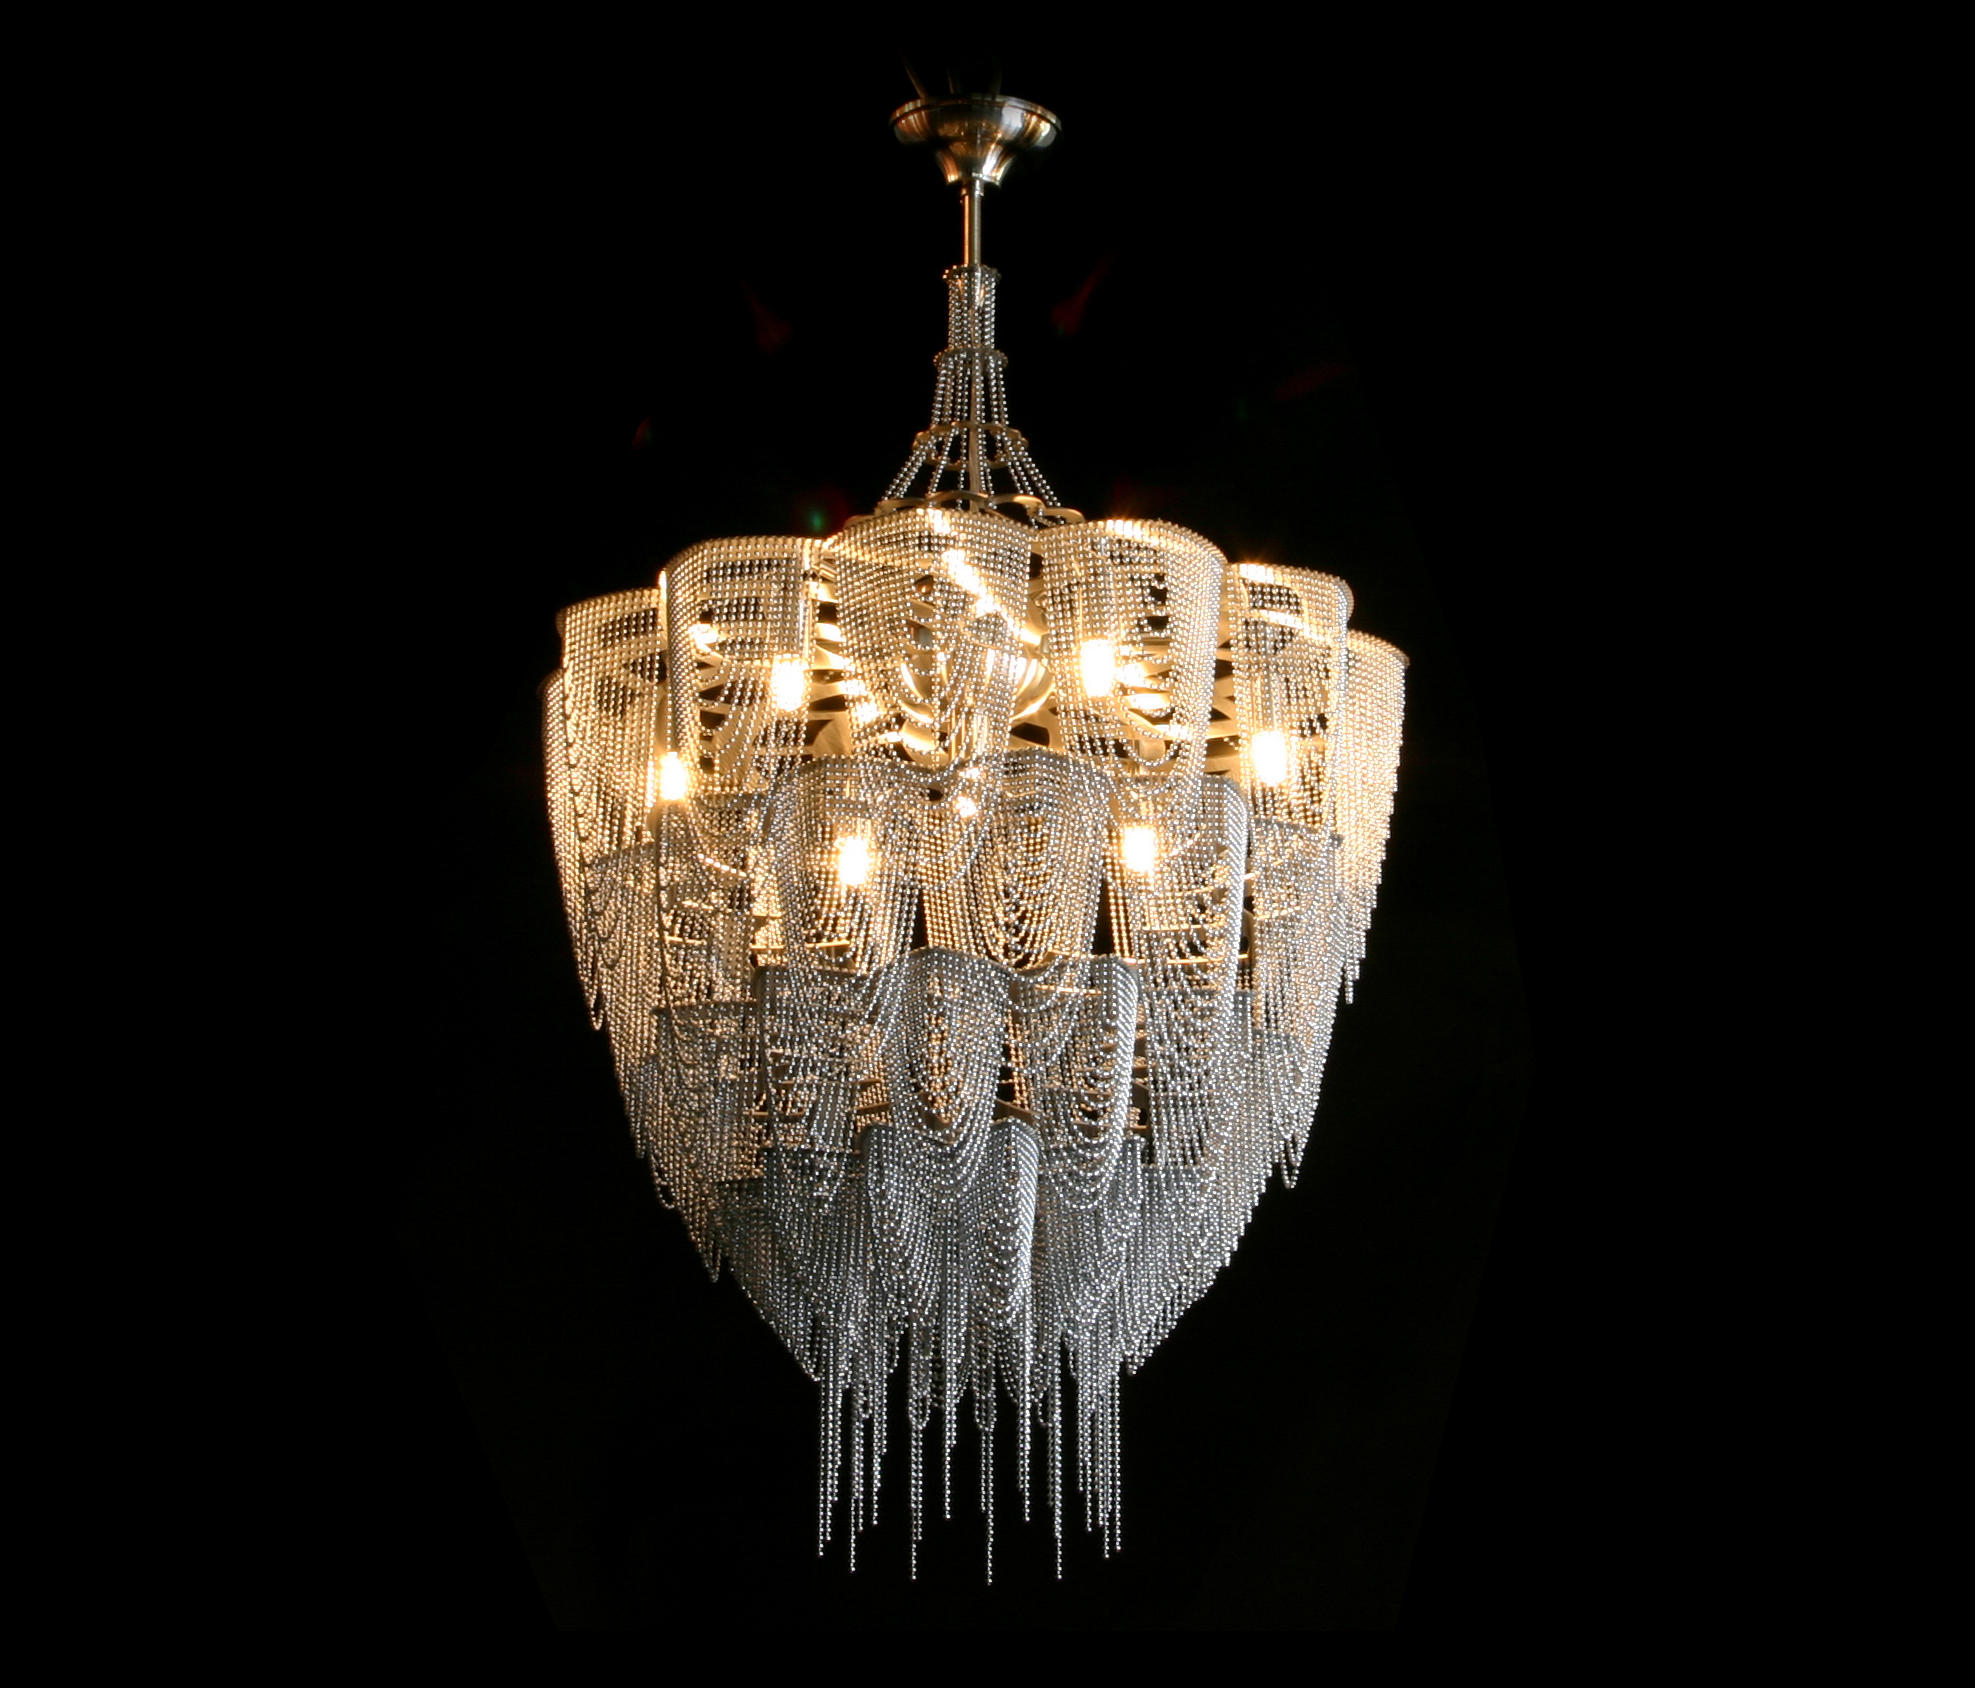 Protea 500 Suspended Lighting Objects From